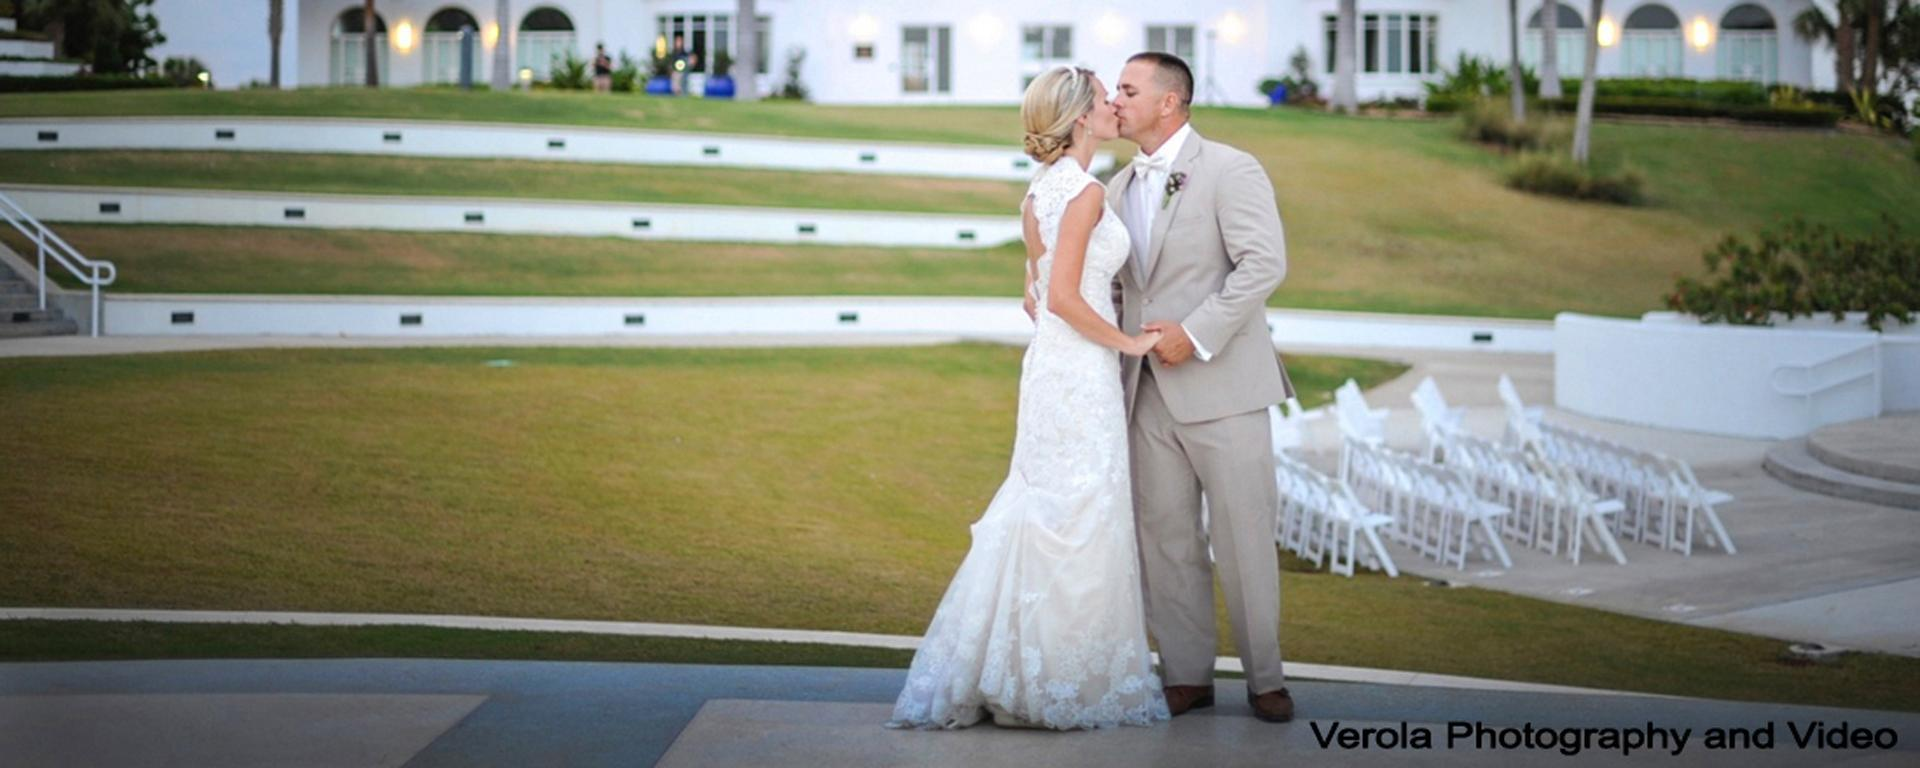 The Mansion at Tuckahoe bride and groom photo